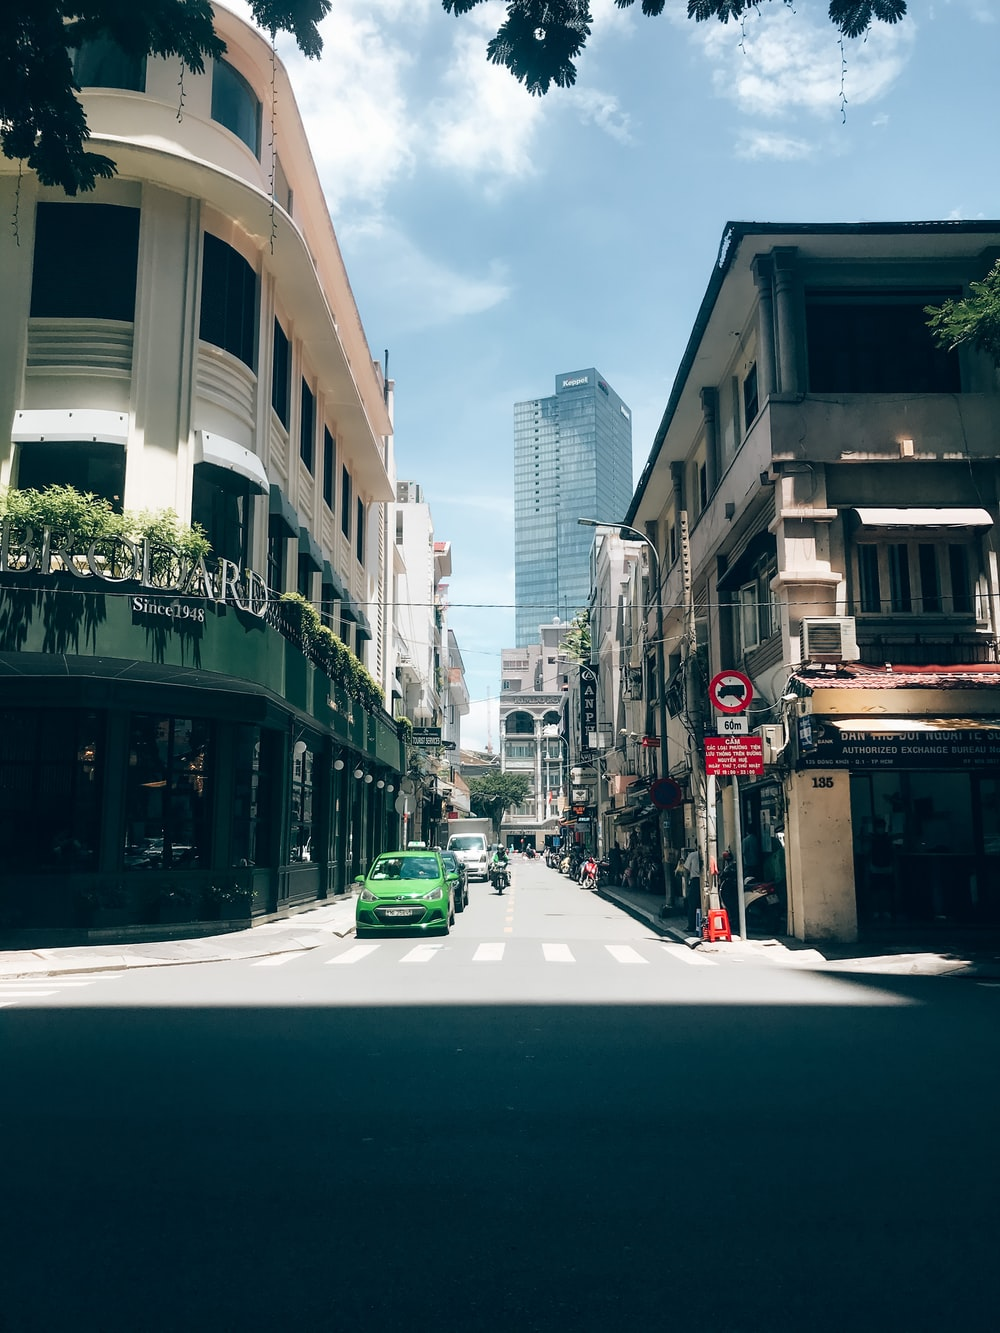 cars parked on side of the road in between buildings during daytime